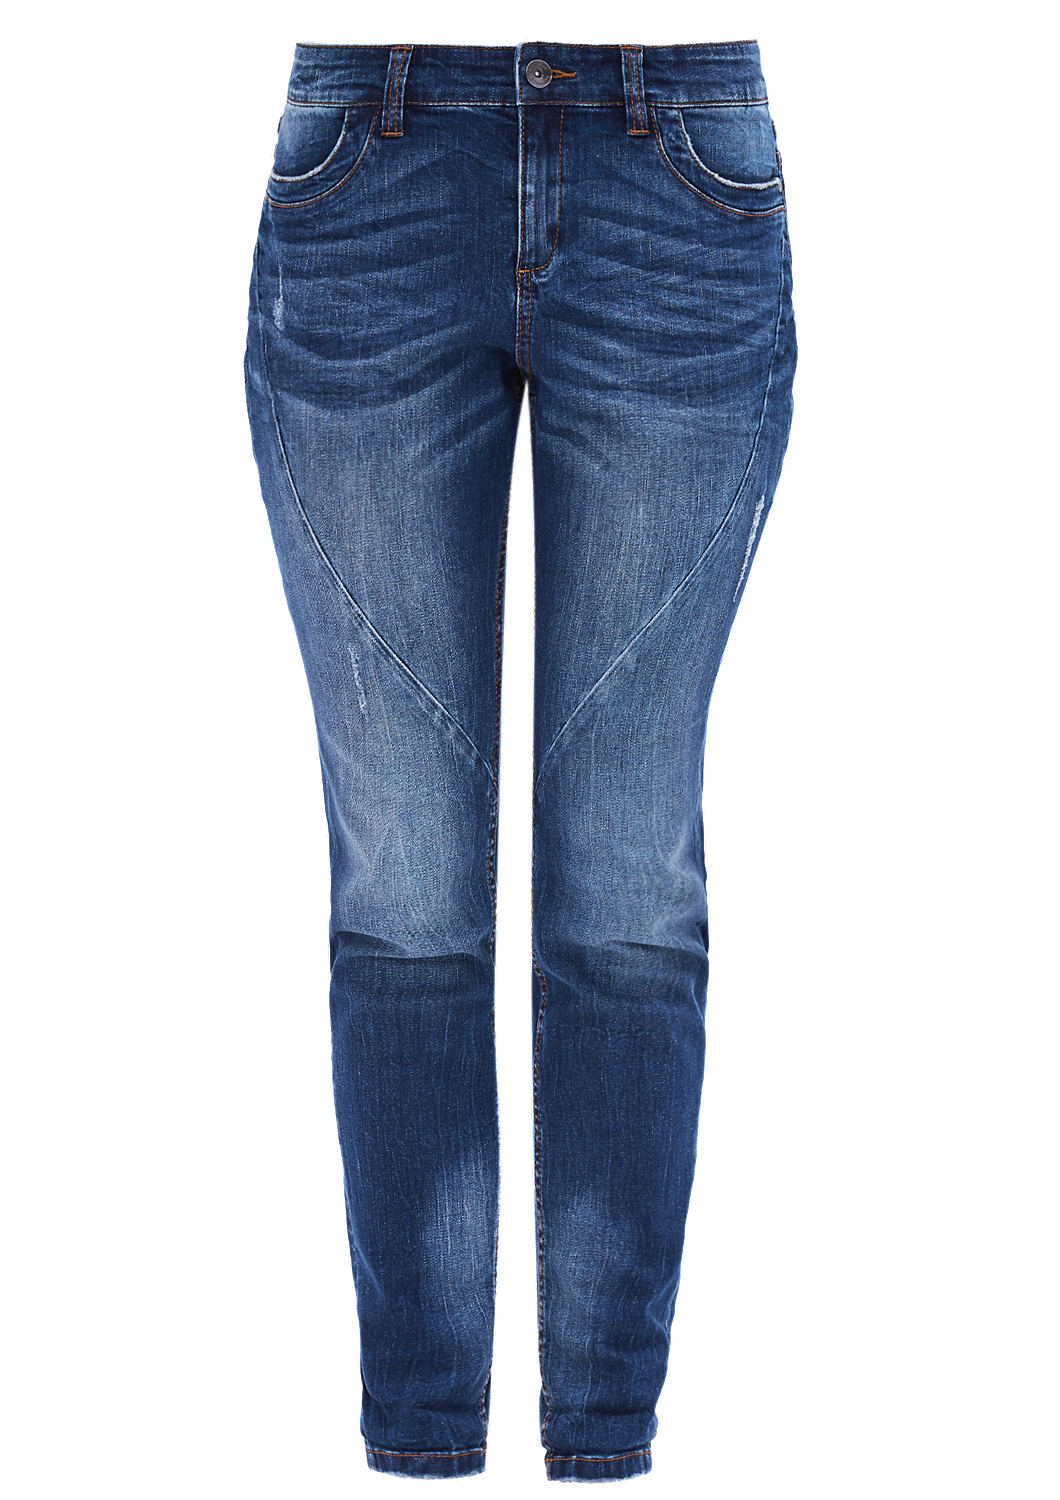 Fancy Fit: Dunkle StretchDenim kaufen